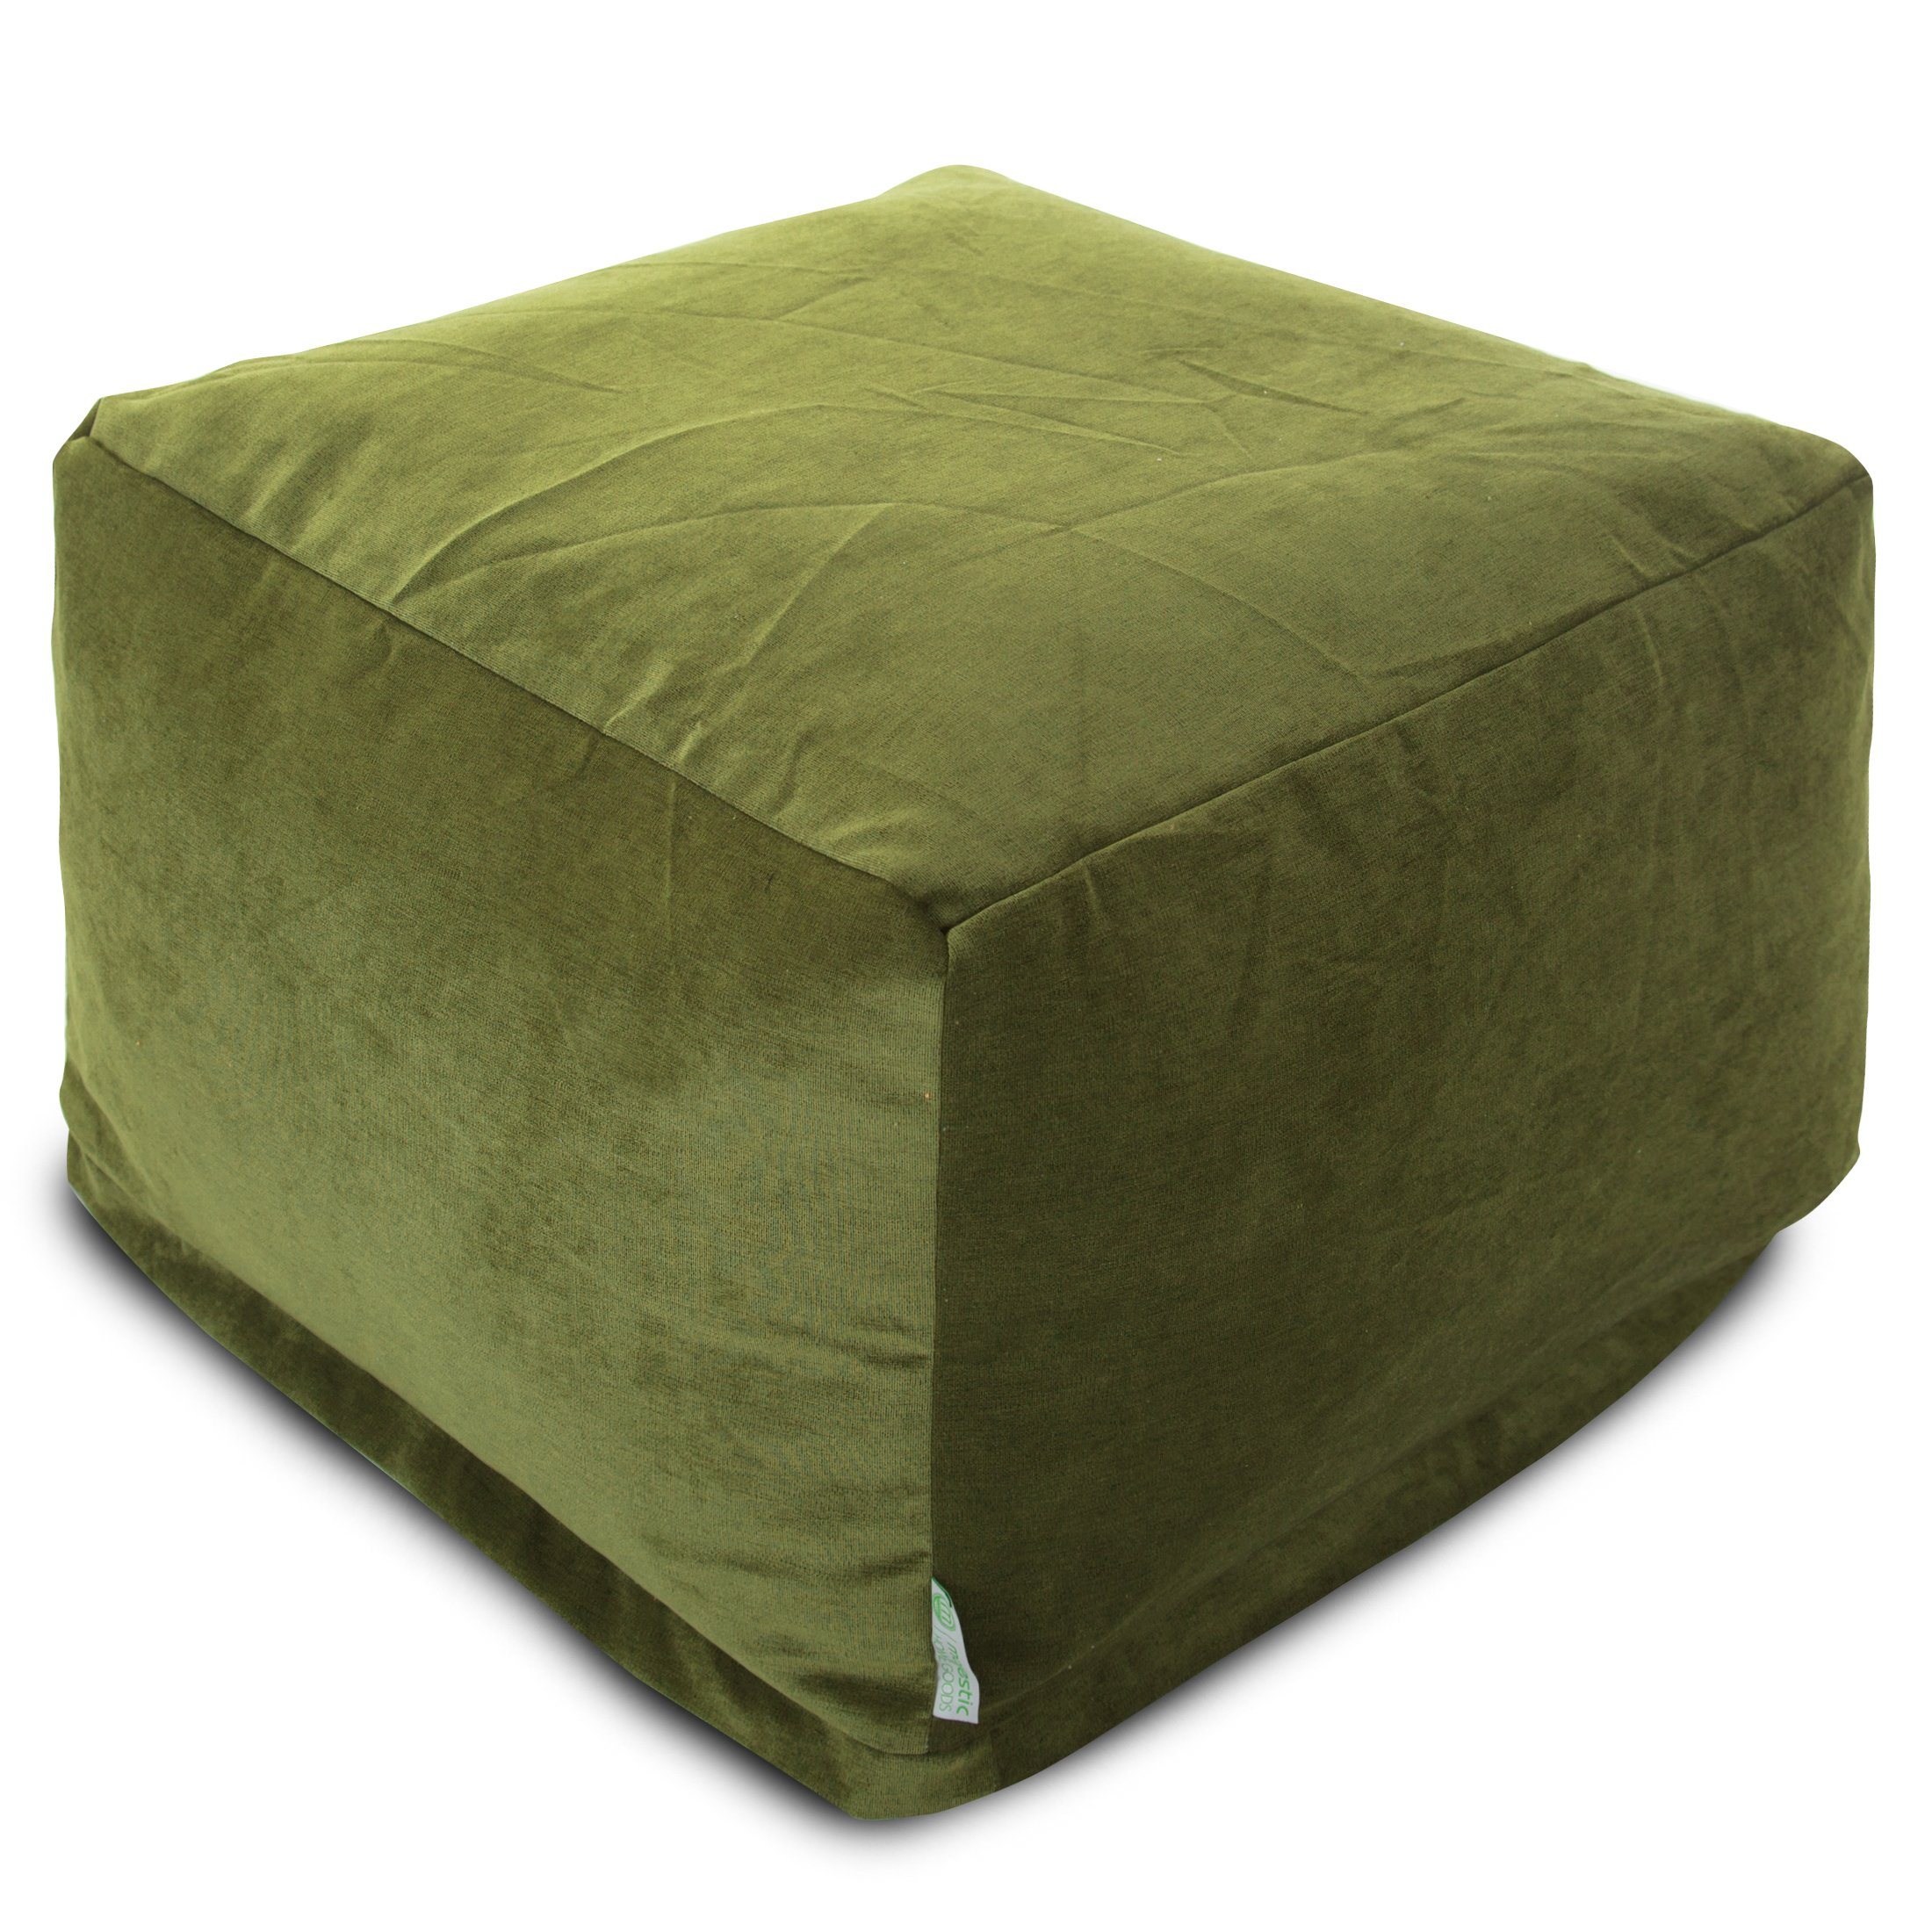 Majestic Home Goods Villa Ottoman, Large, Apple